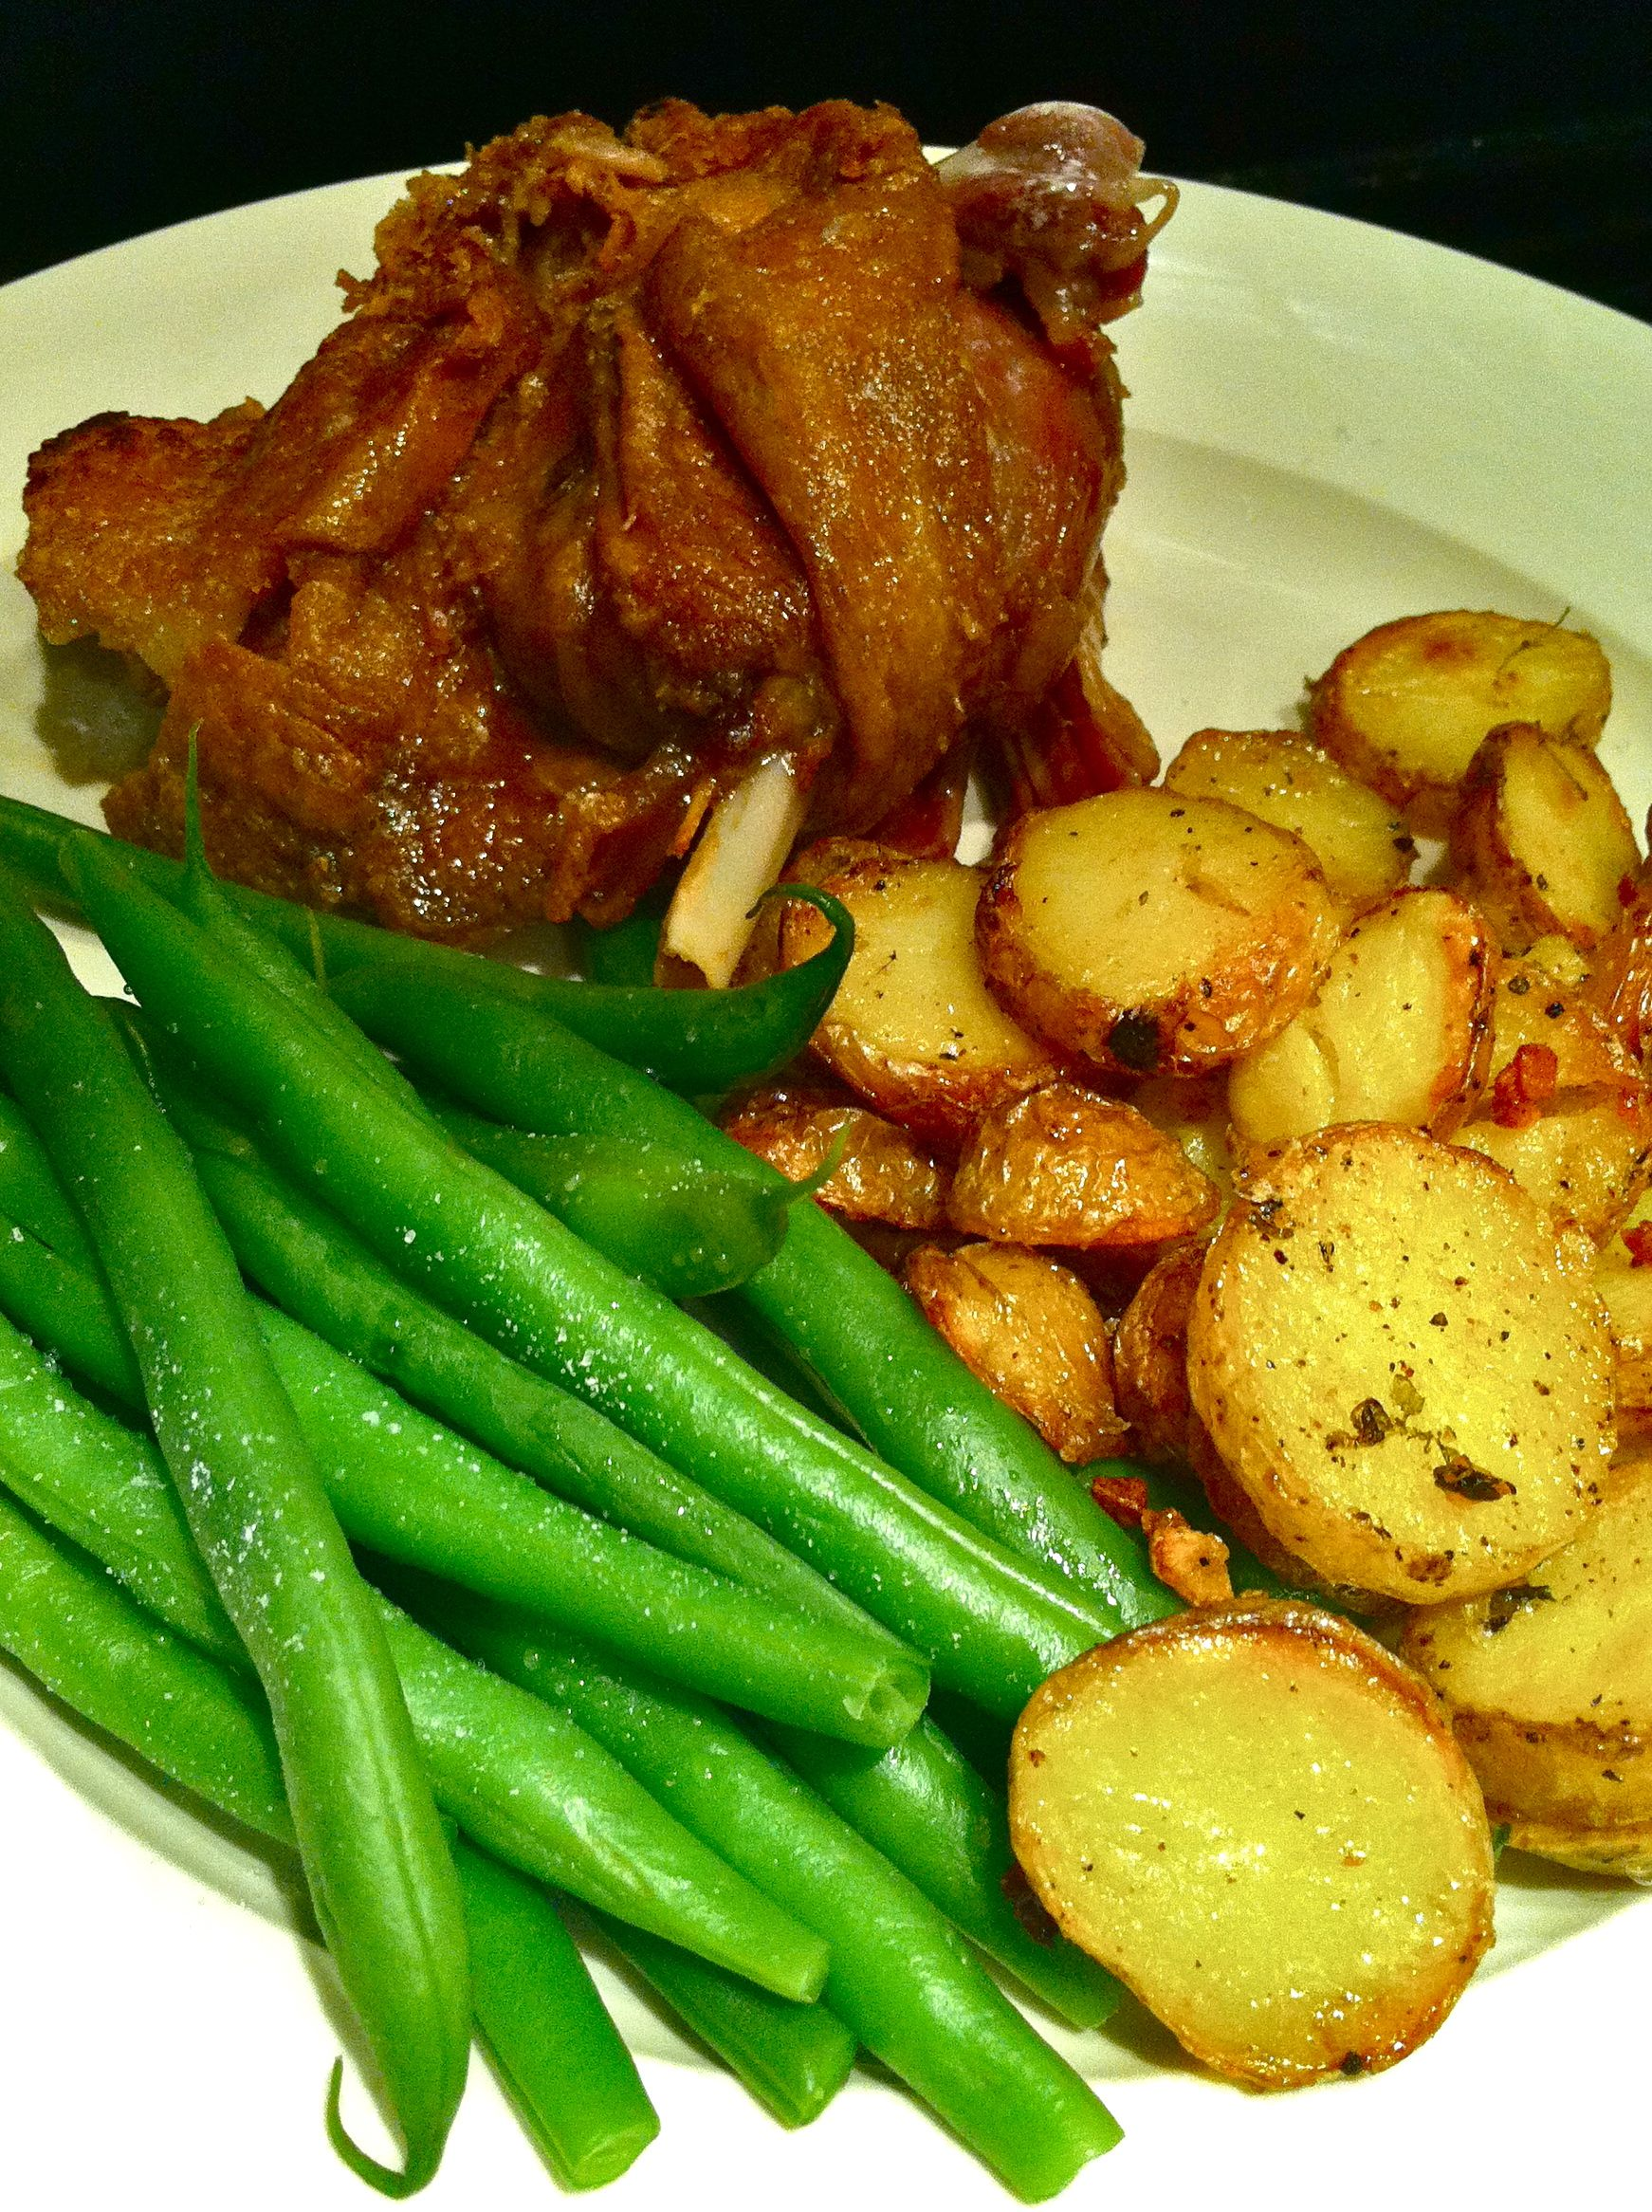 Duck confit and pommes sarladaise